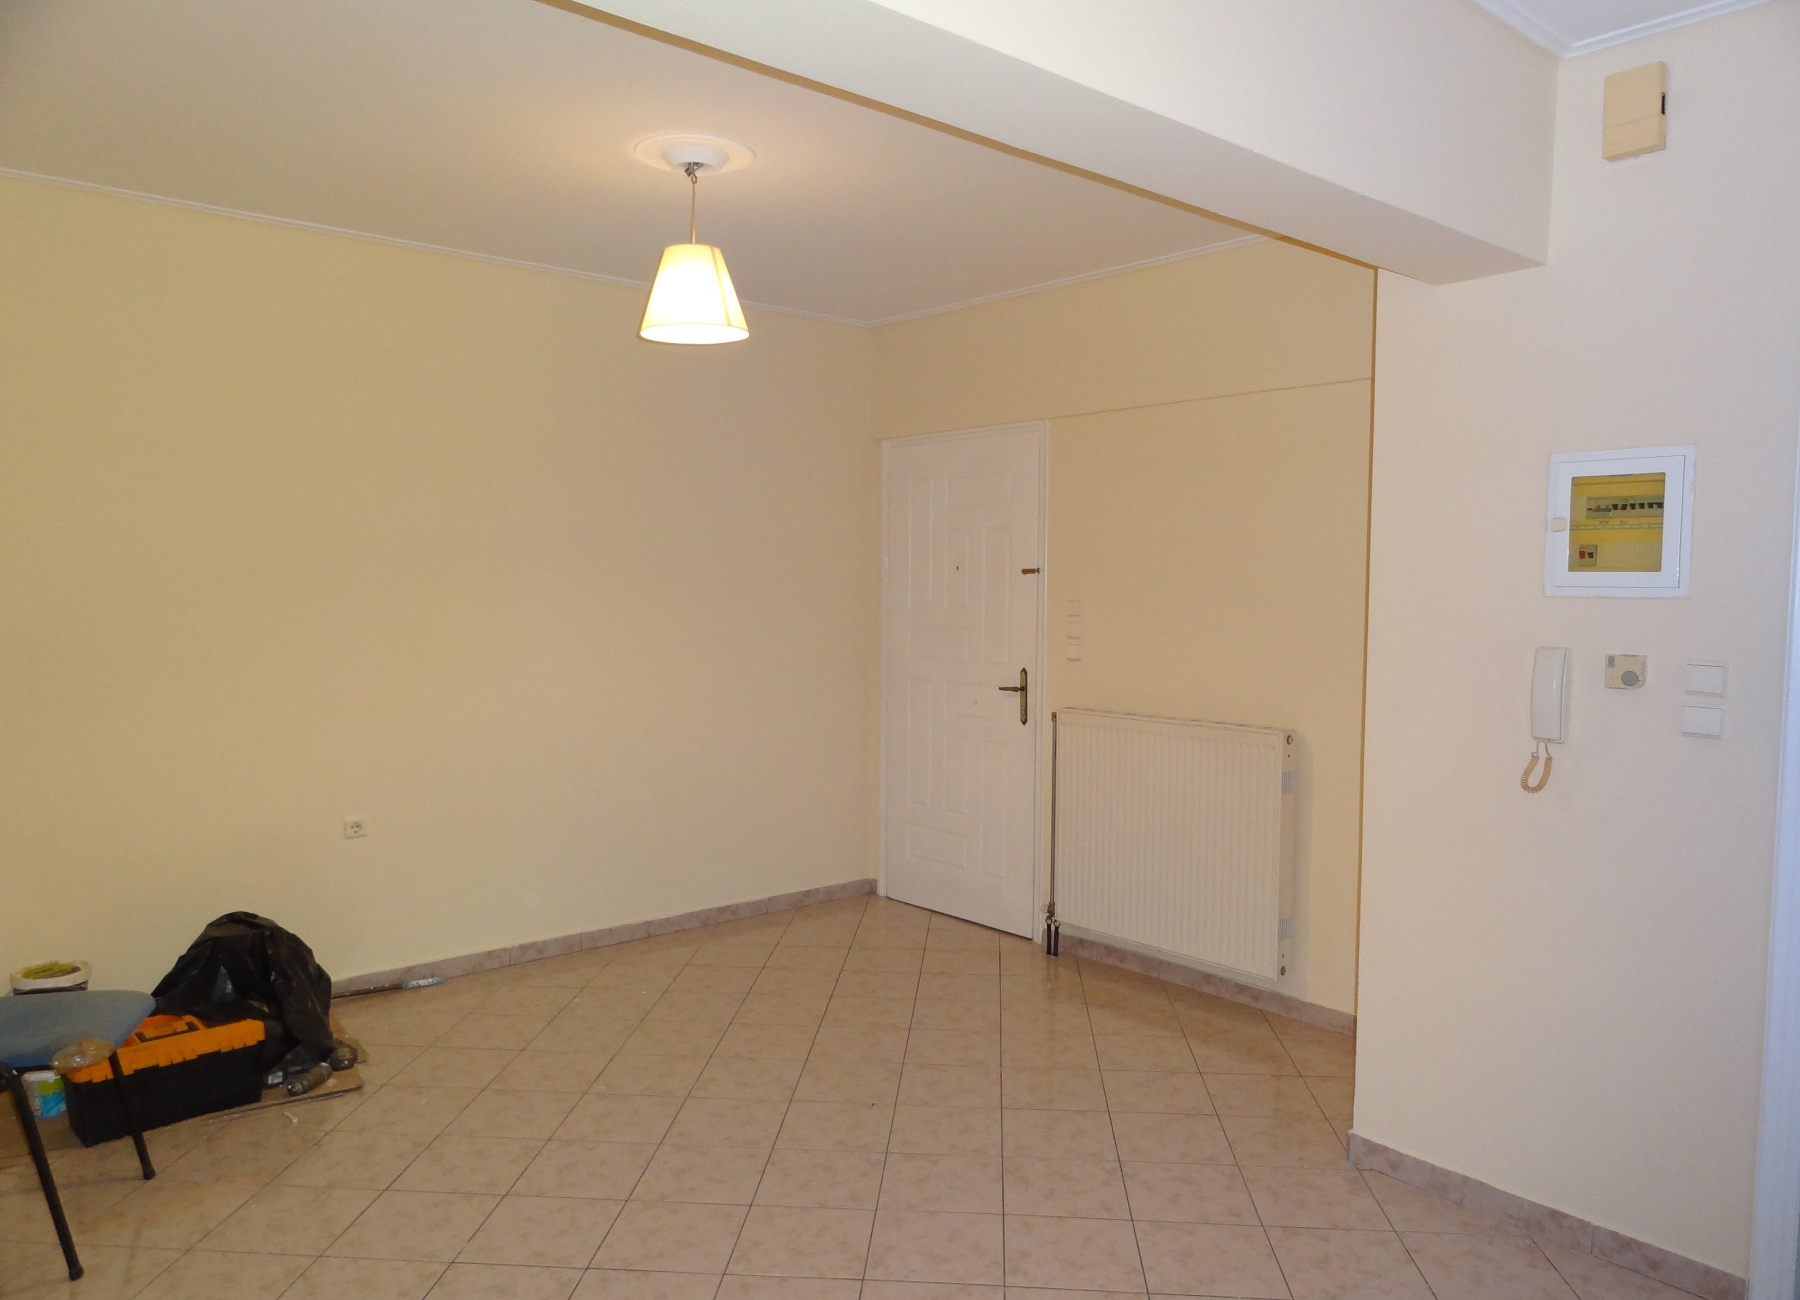 For rent 1 bedroom bright apartment of 55 sq.m. 1st floor in the mosque in Kaloutsiani in Ioannina